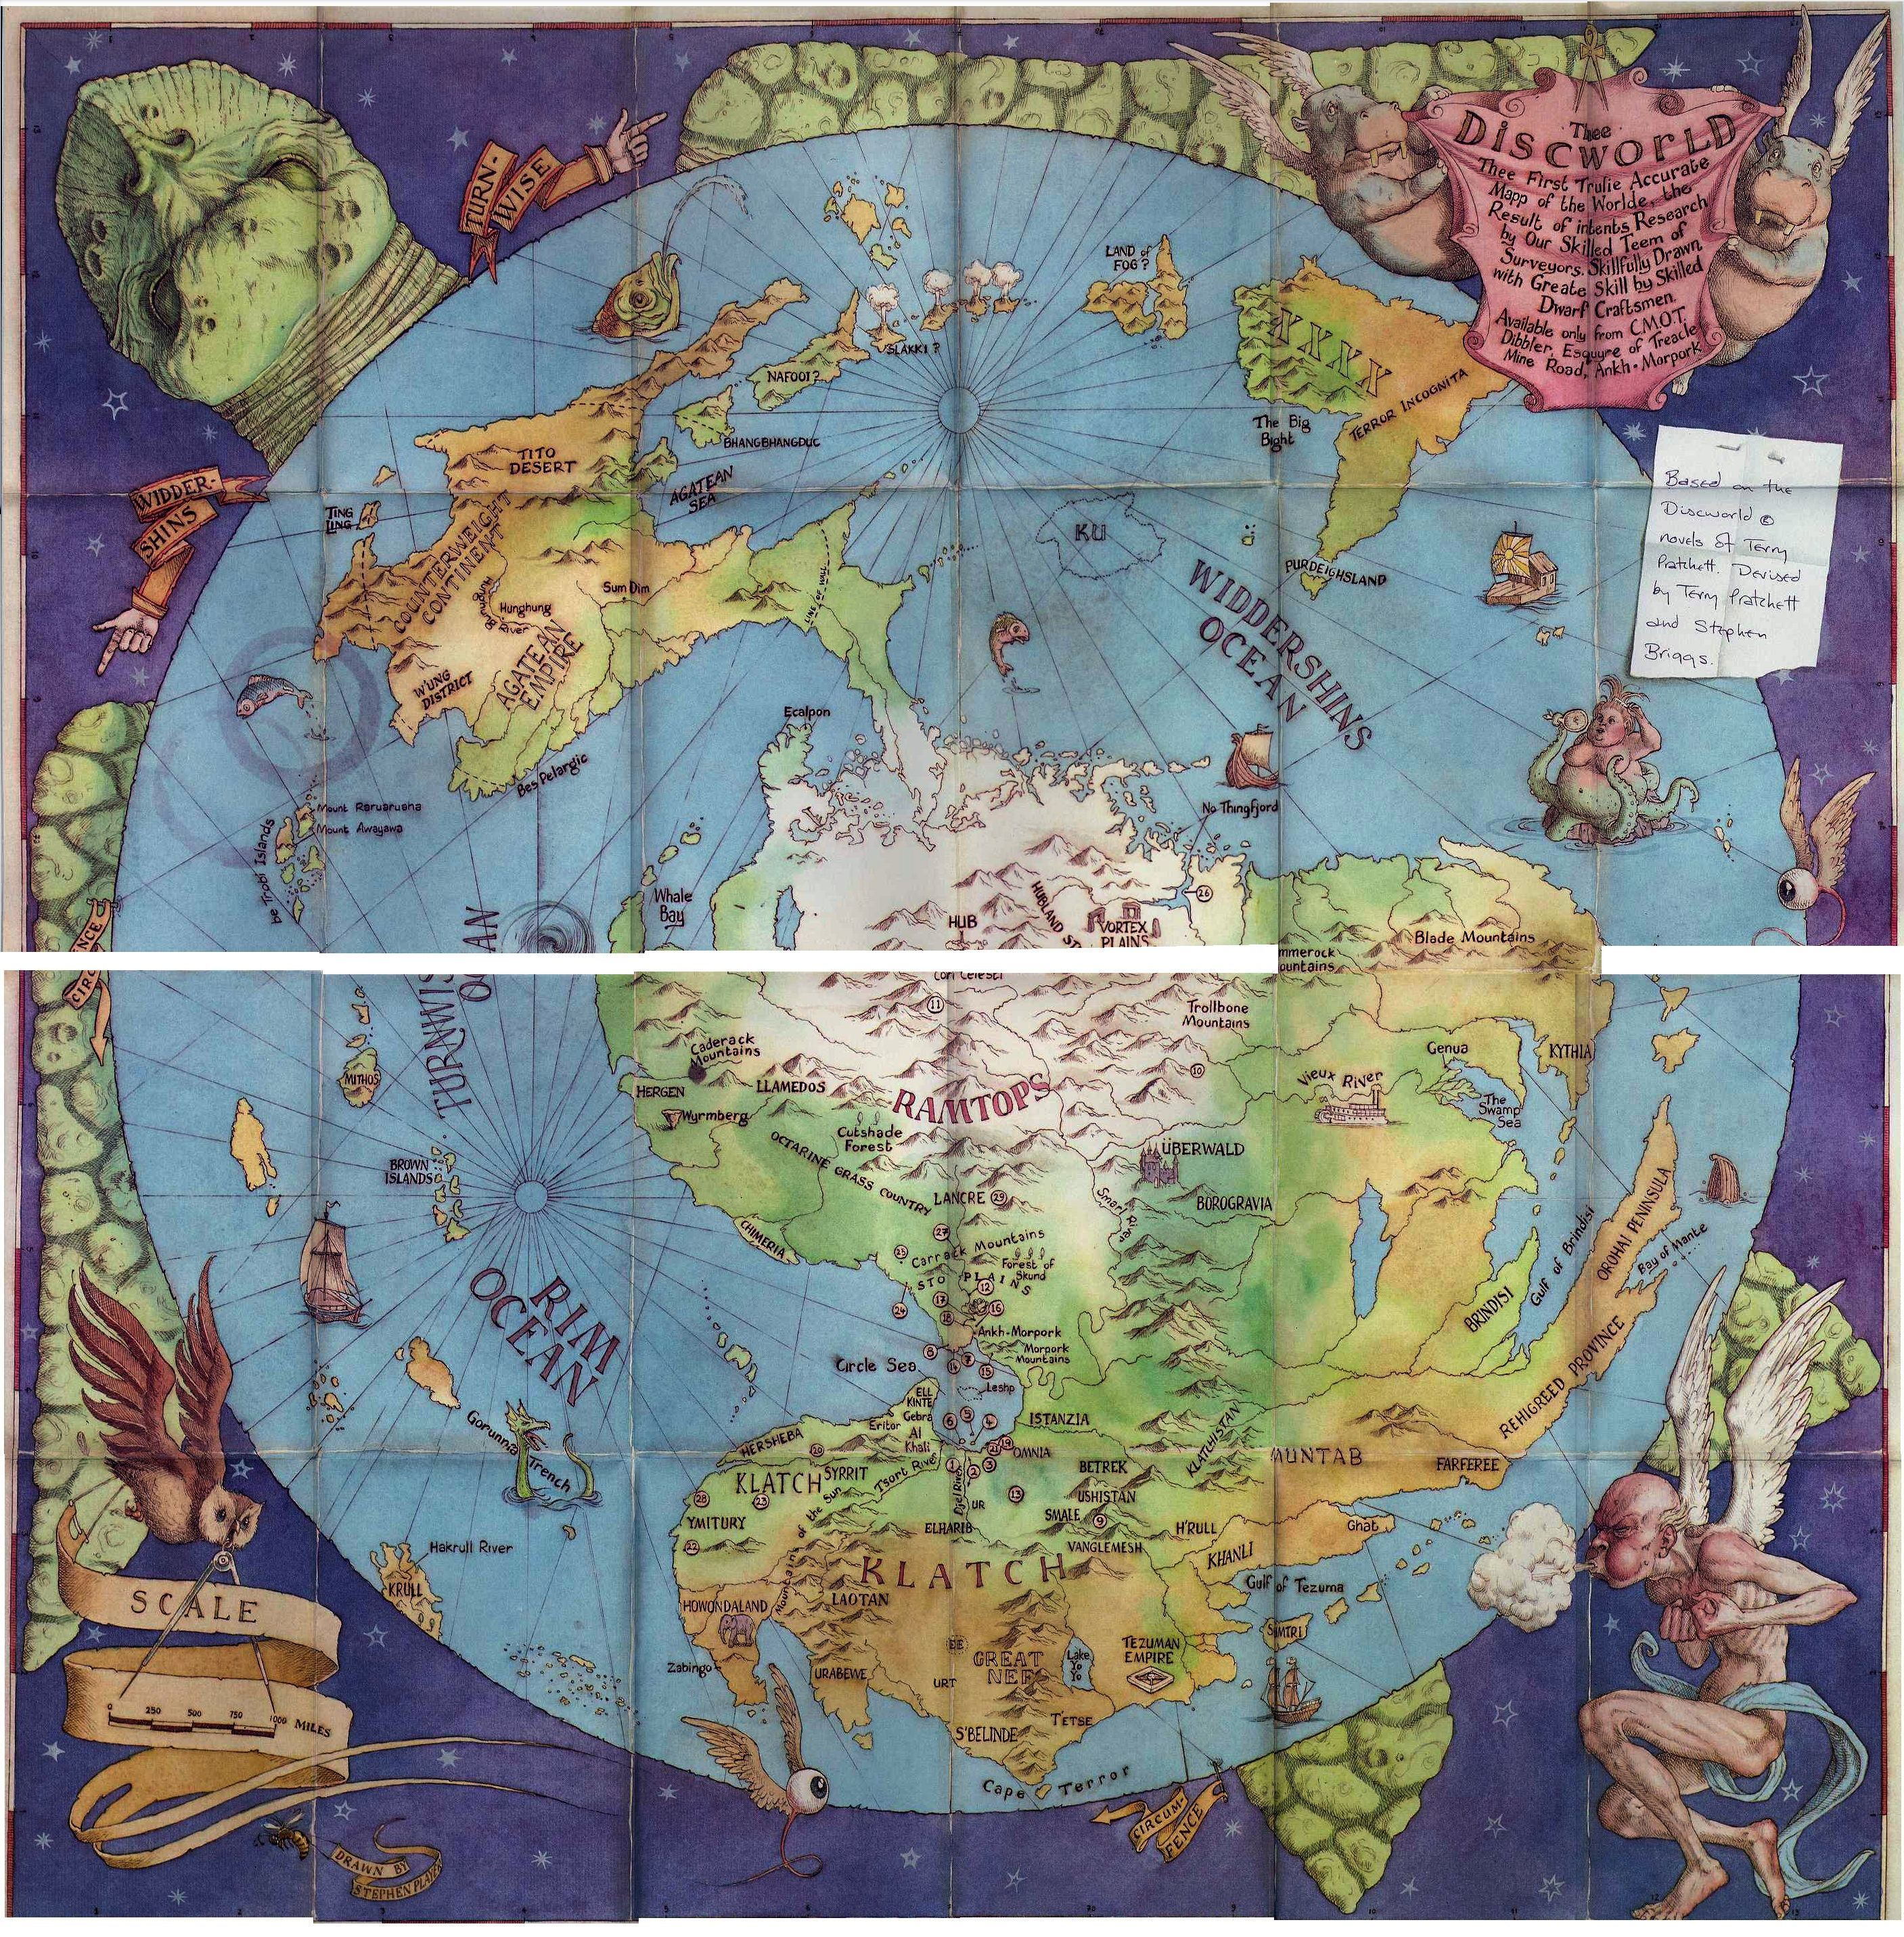 Discworld. Because a map of any world with a place called Bad Ass